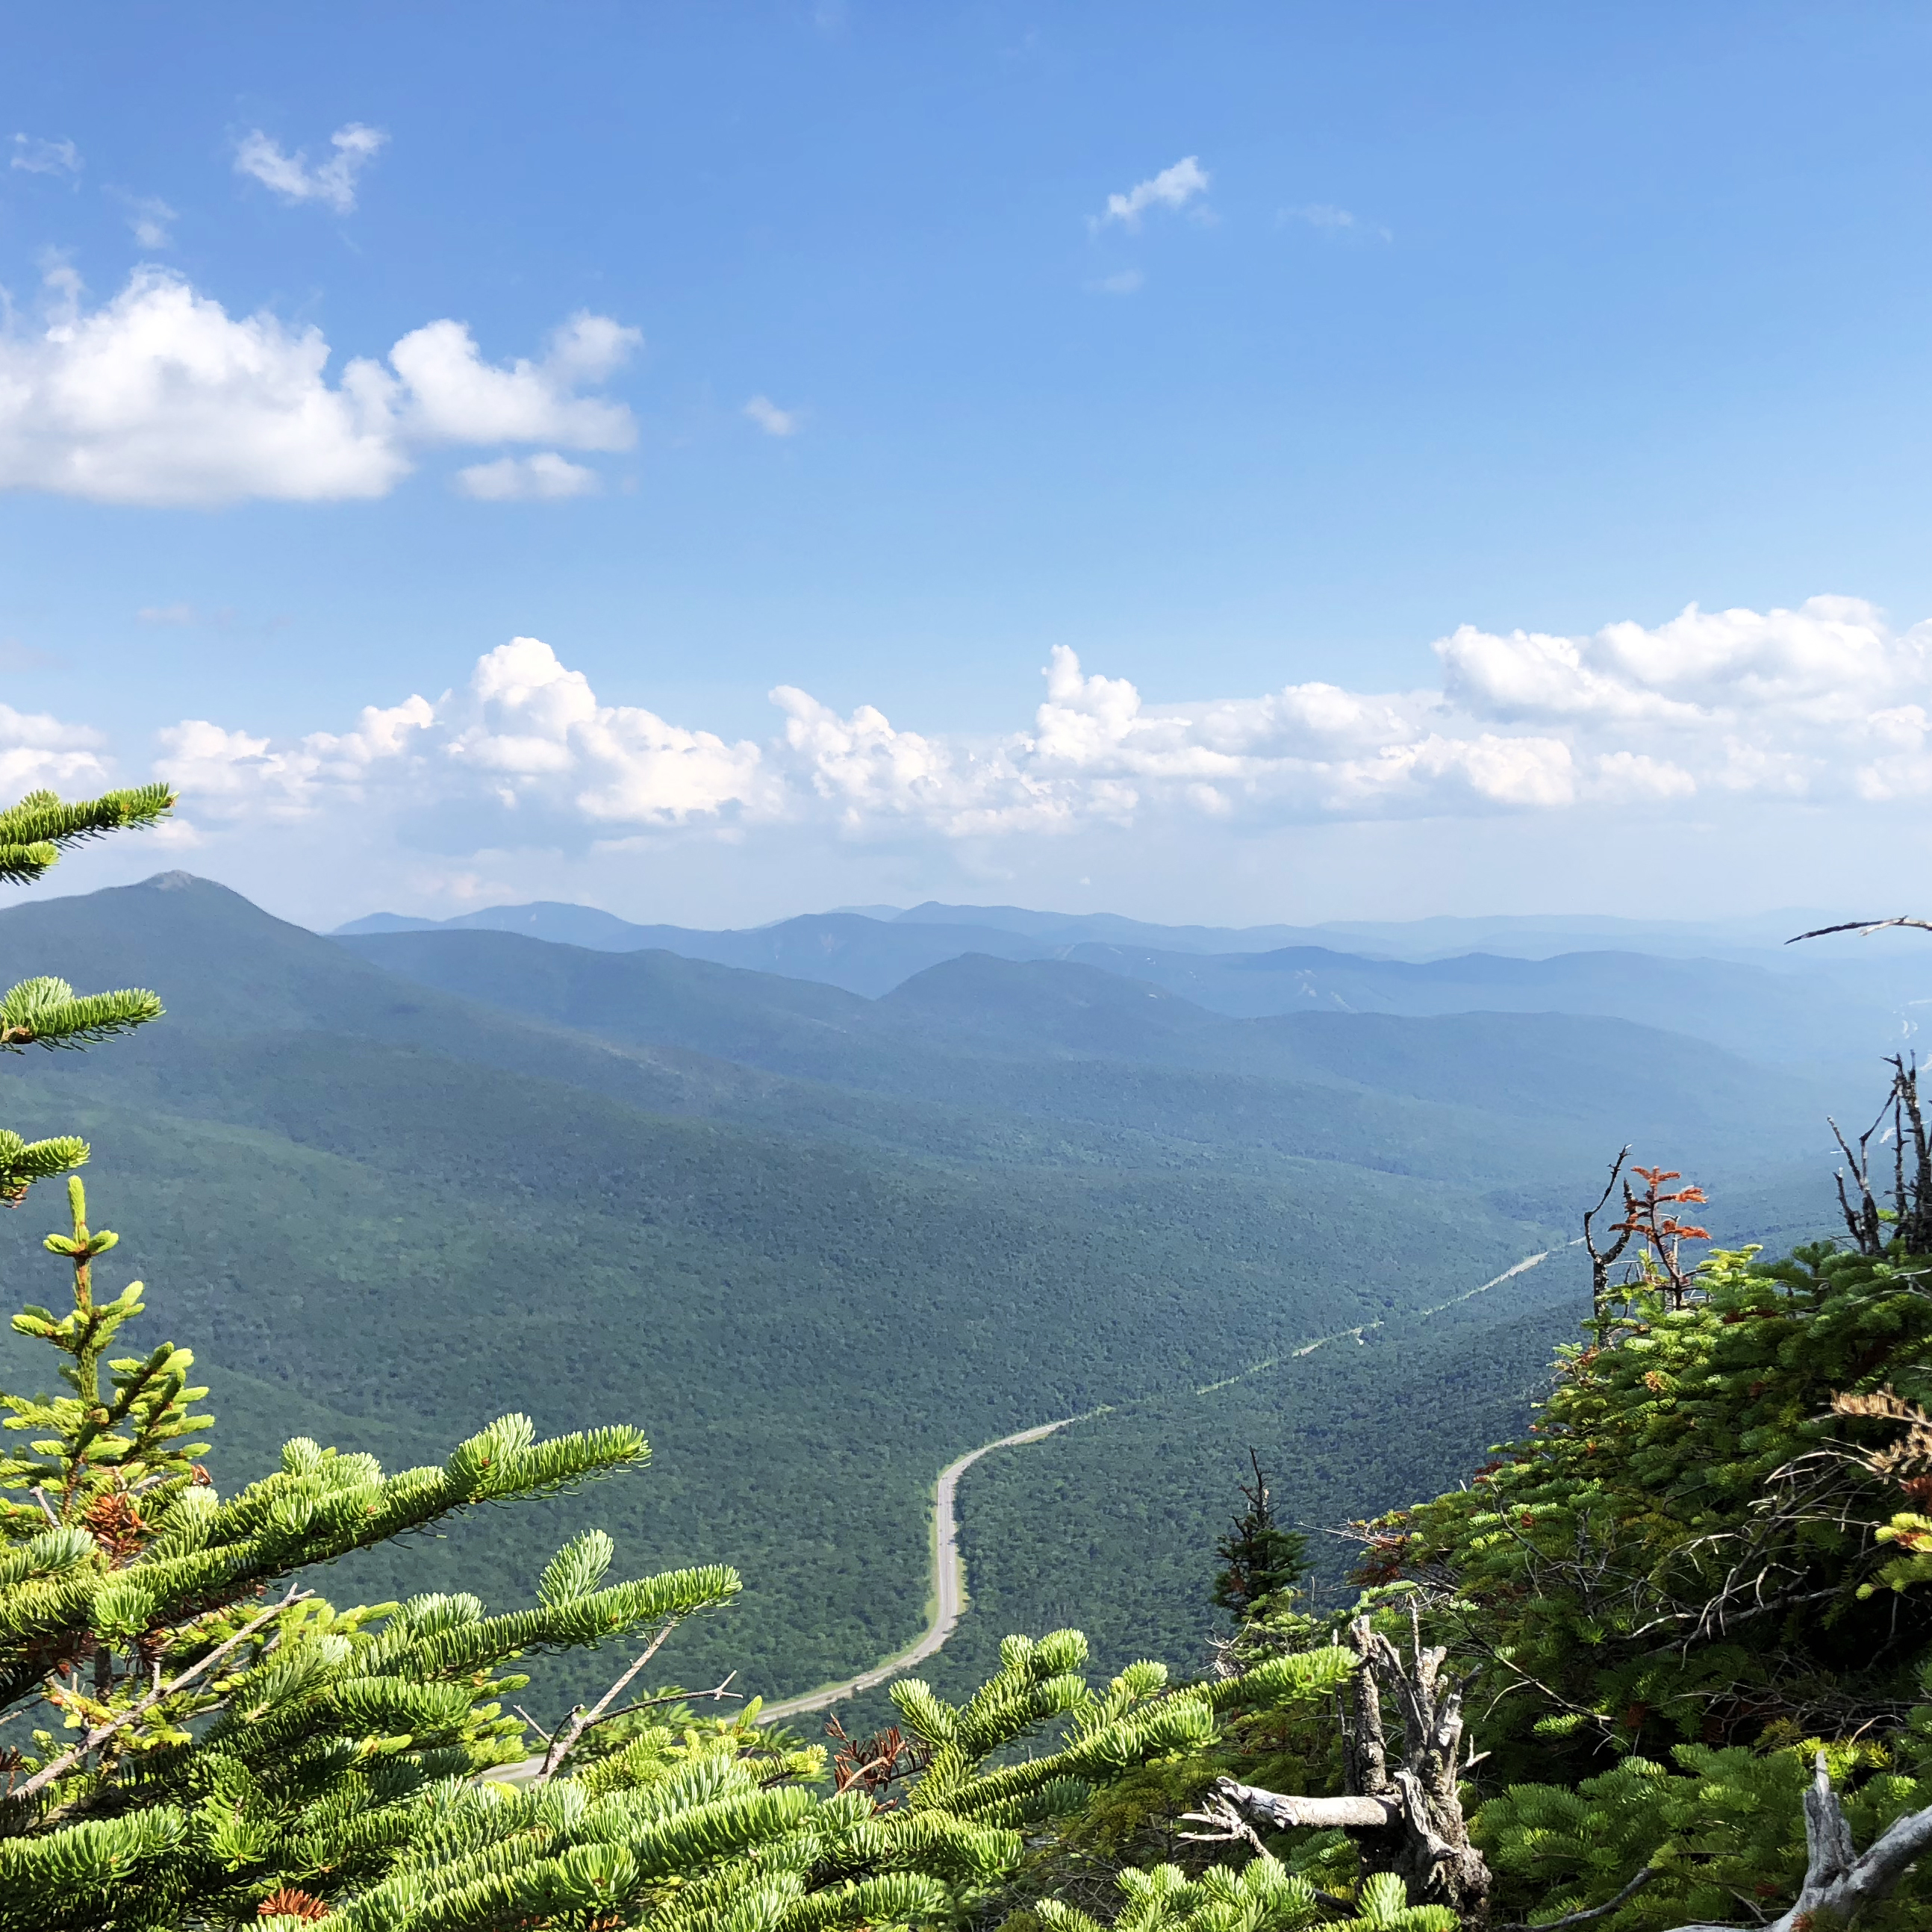 New-Hampshire-Cannon-Tram-View.jpg?mtime=20180818131042#asset:102982